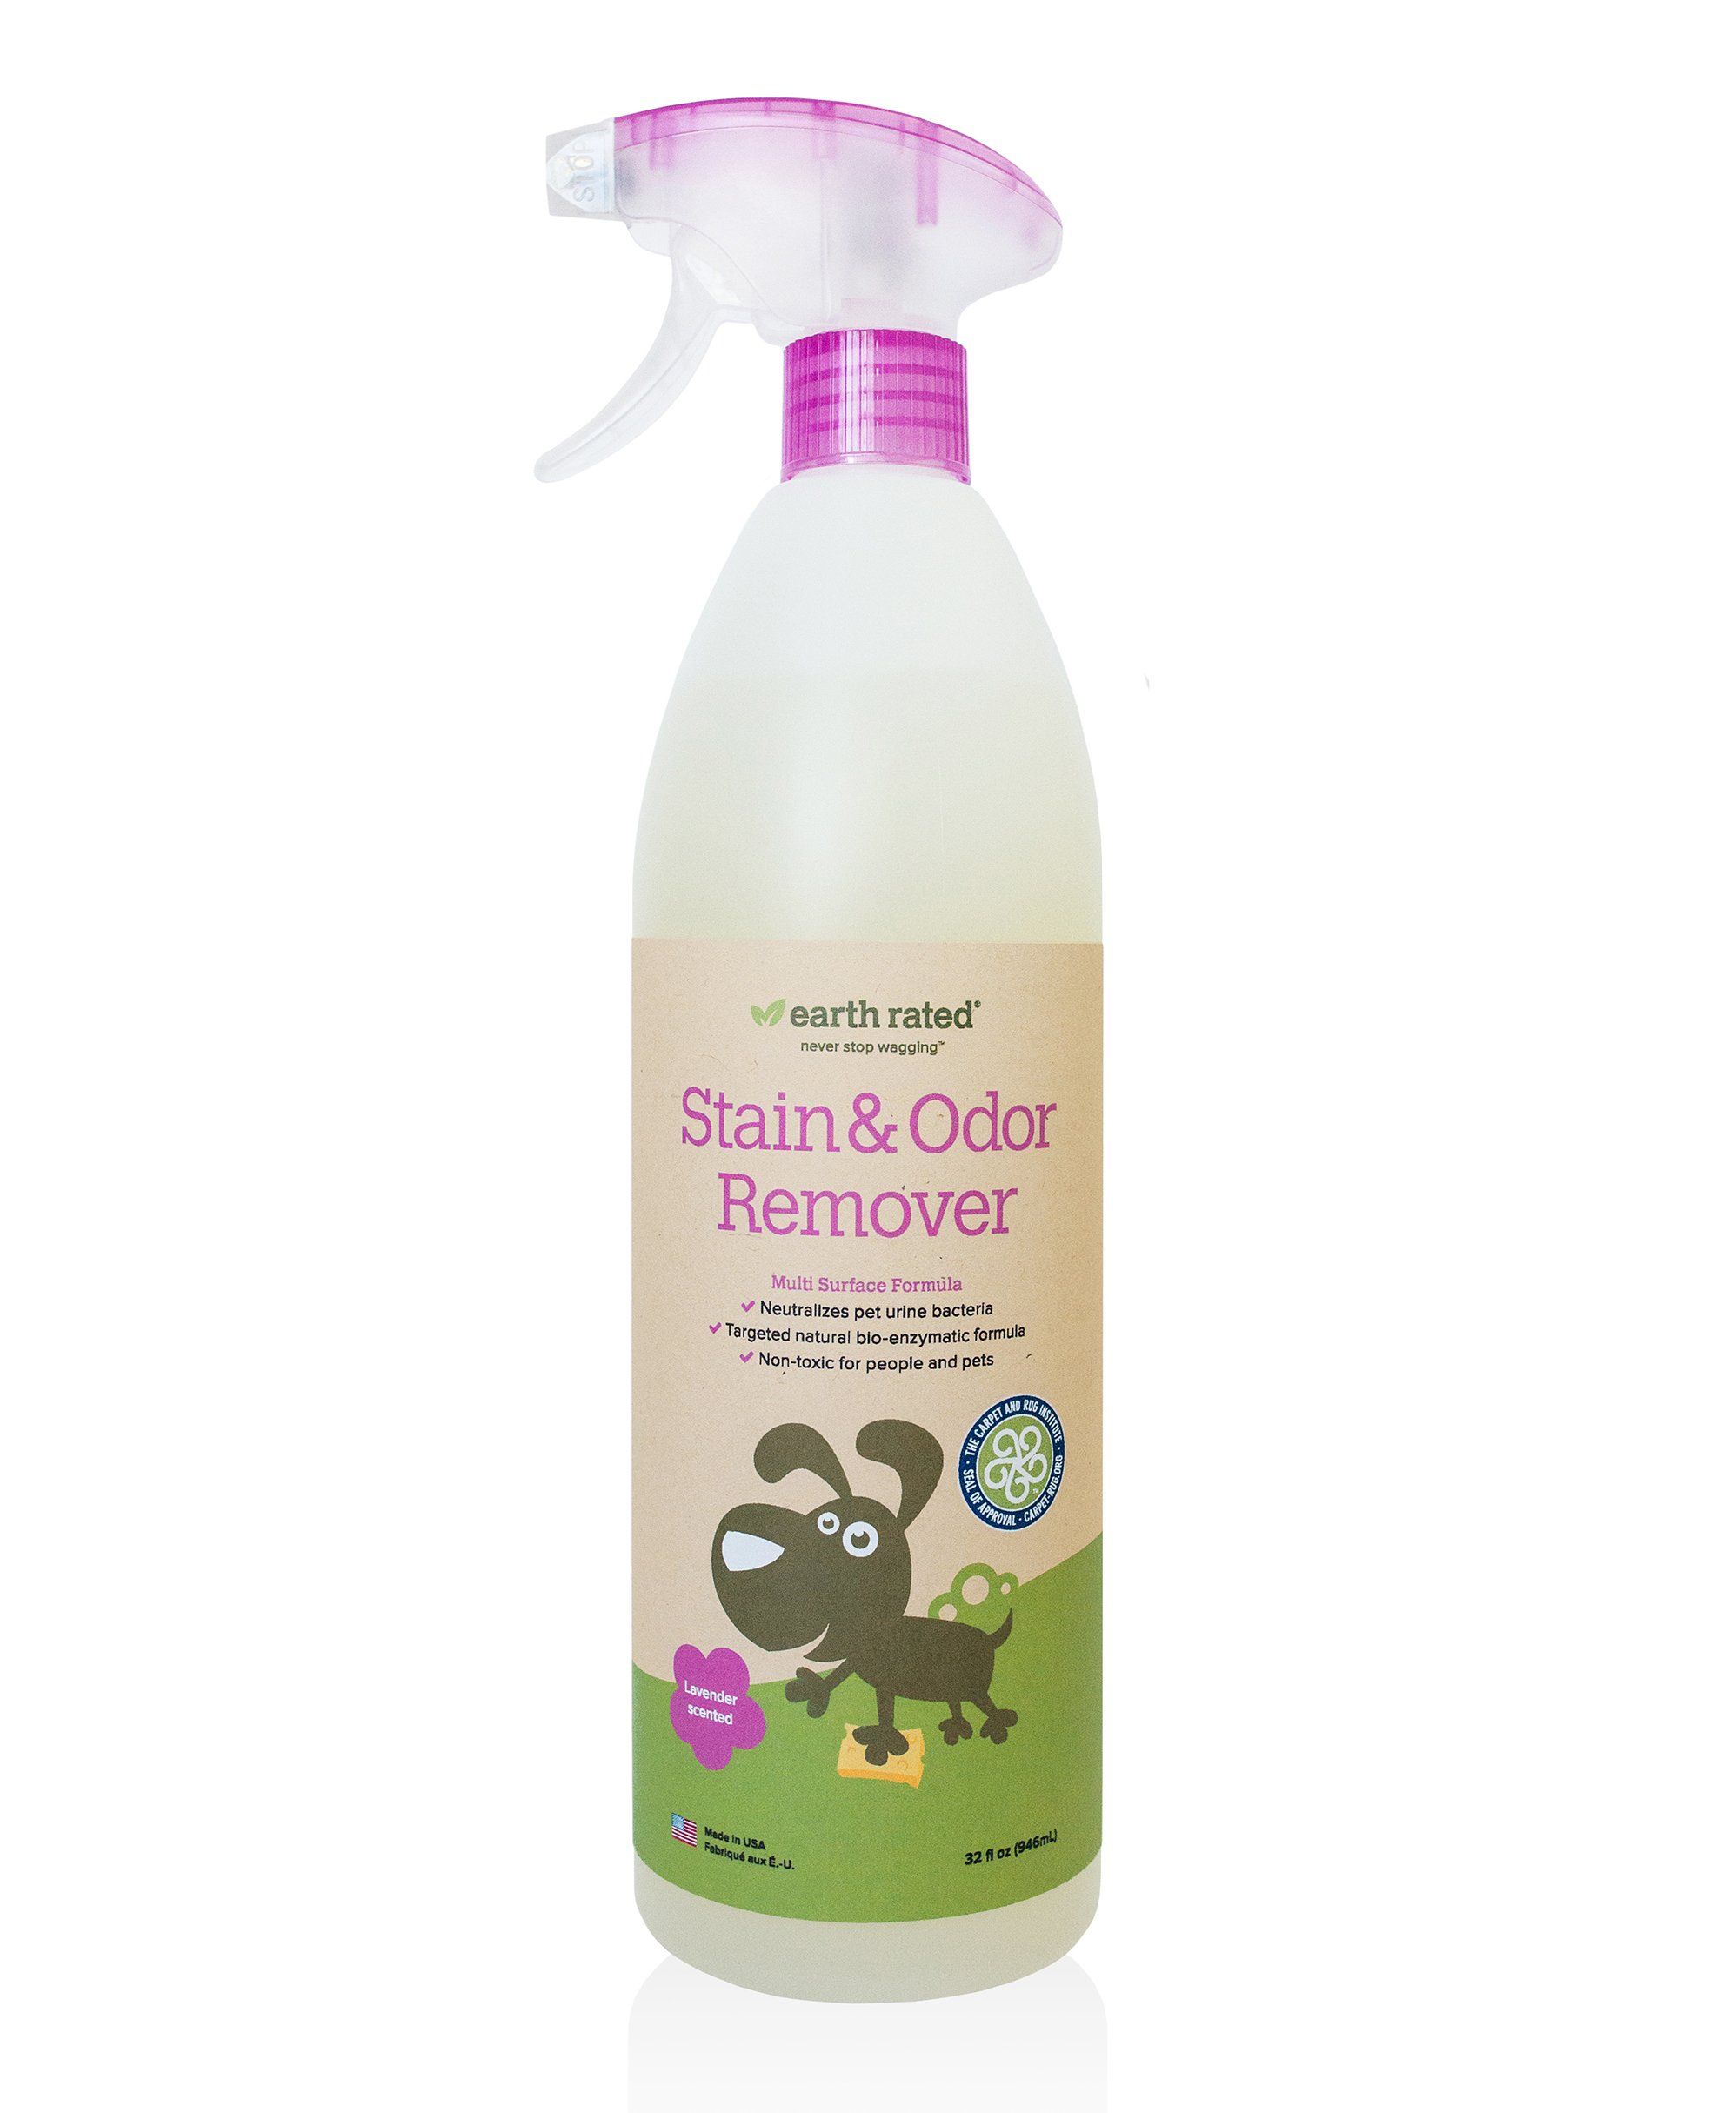 Earth Rated Lavender-scented Pet Stain and Odor Remover (32 fl oz) Powerful Natural Bio-Enzymatic Formula